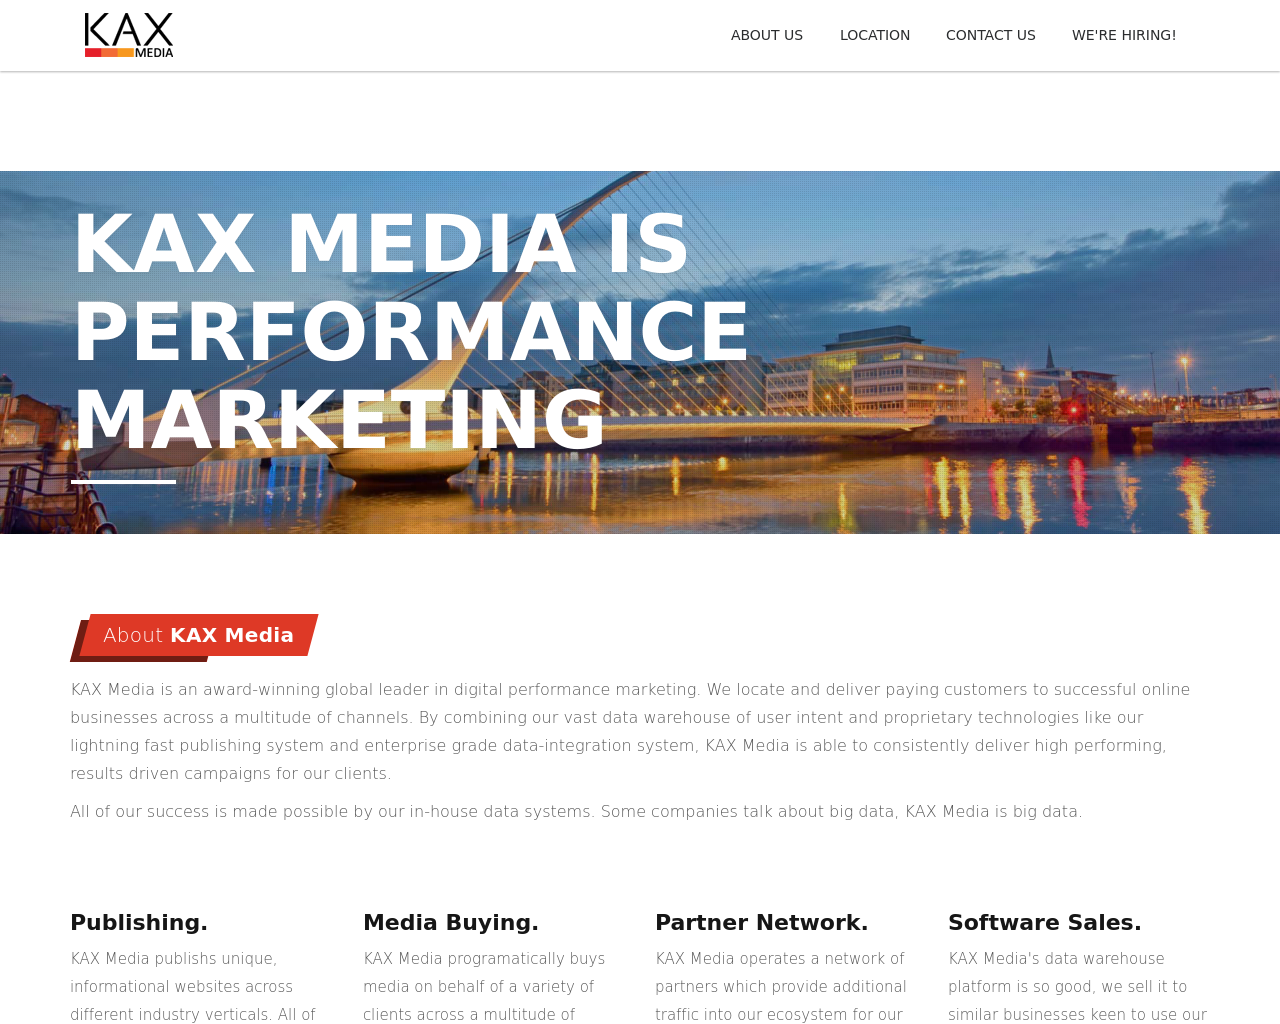 kax-media-Advertising-Reviews-Pricing